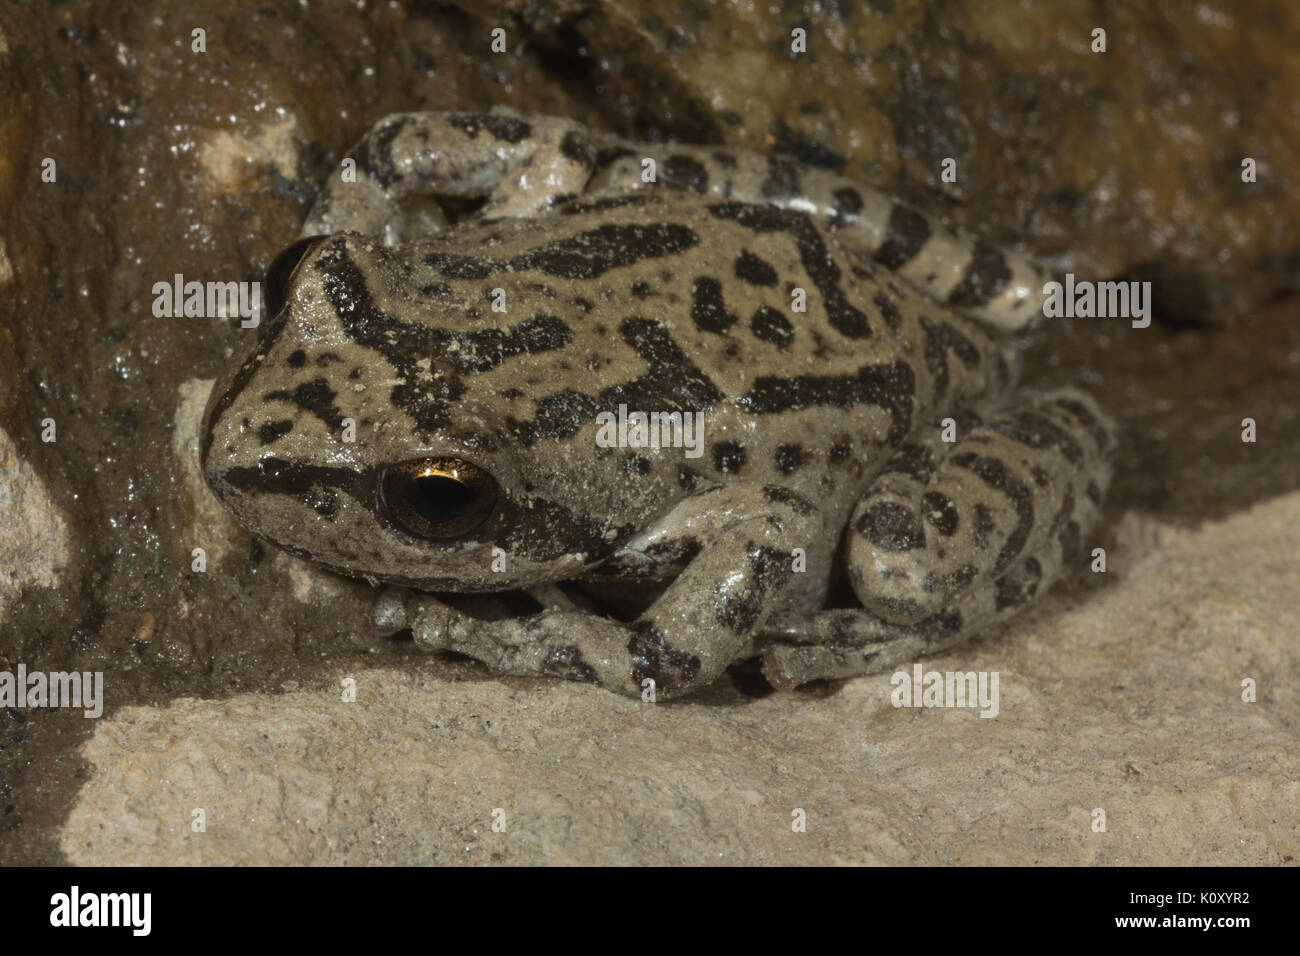 A Pacific Tree Frog (Pseudacris regilla, formerly Hyla regilla) on a cave wall in the Hetch Hetchy Valley, CA - Stock Image